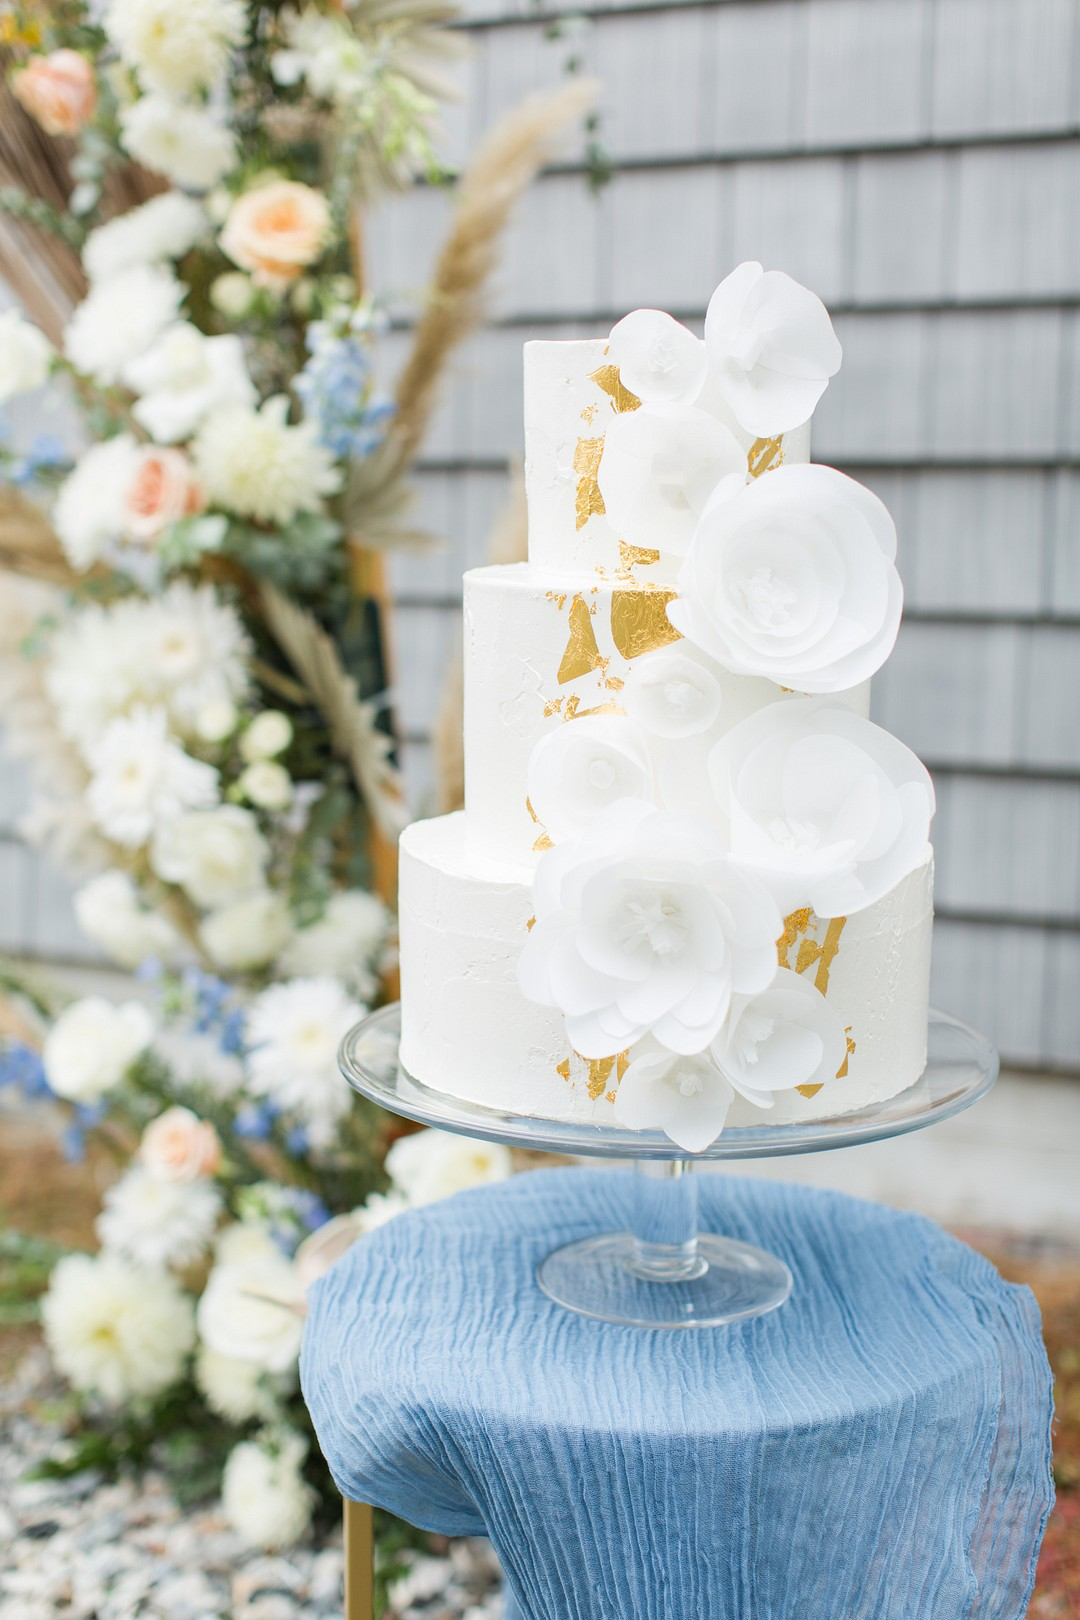 wedding cakee on a classic blue runner